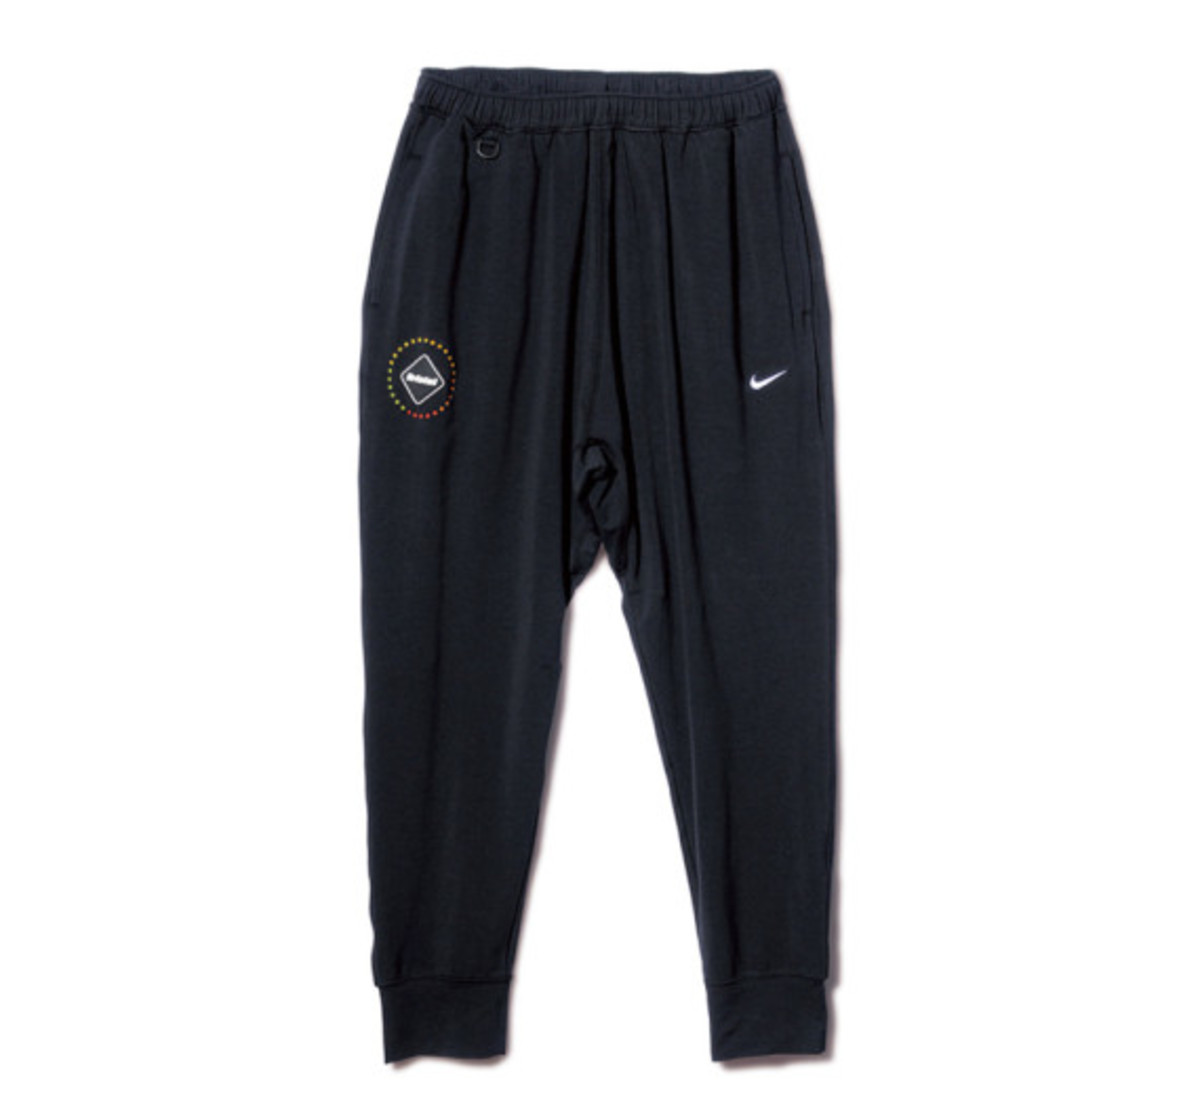 fcrb-sweat-ventilation-hoody-and-sweat-long-pants-10